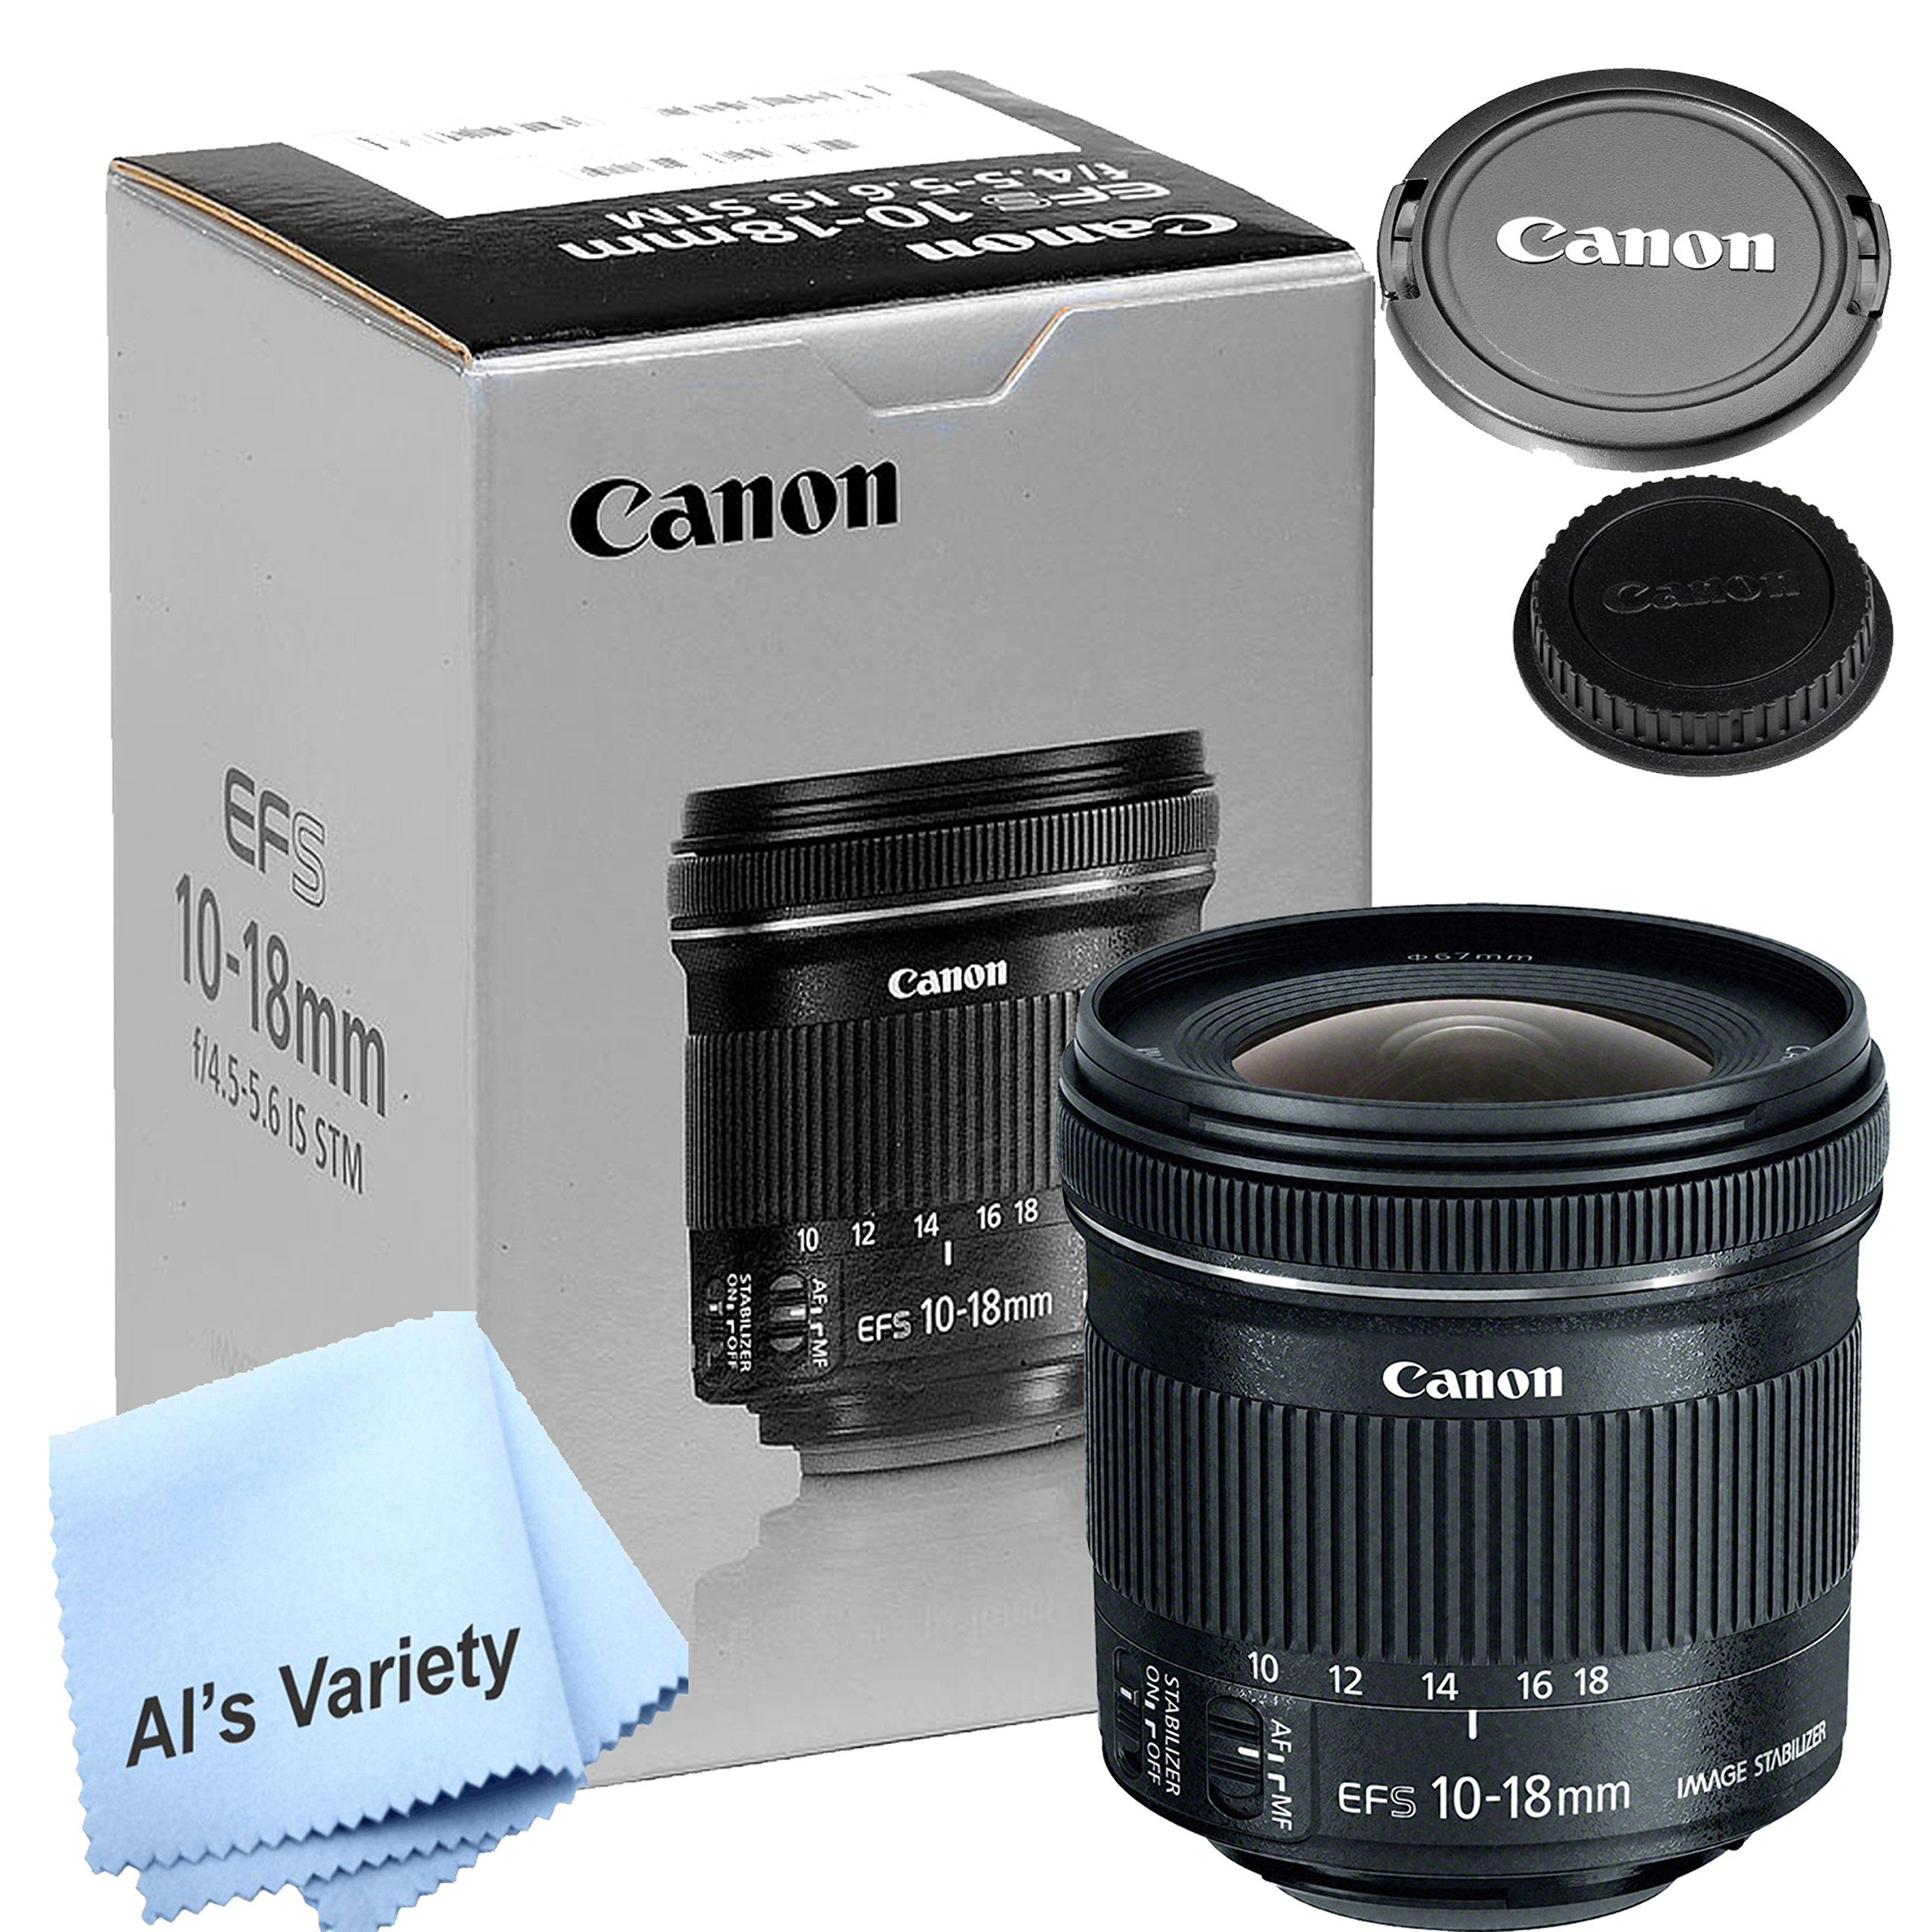 Canon 1018mm F 4 55 6 Is Stm Lens New Retail Box W Free Microfiber Cleaning Cloth You Can Get More Clean Microfiber Microfiber Cleaning Cloths Retail Box